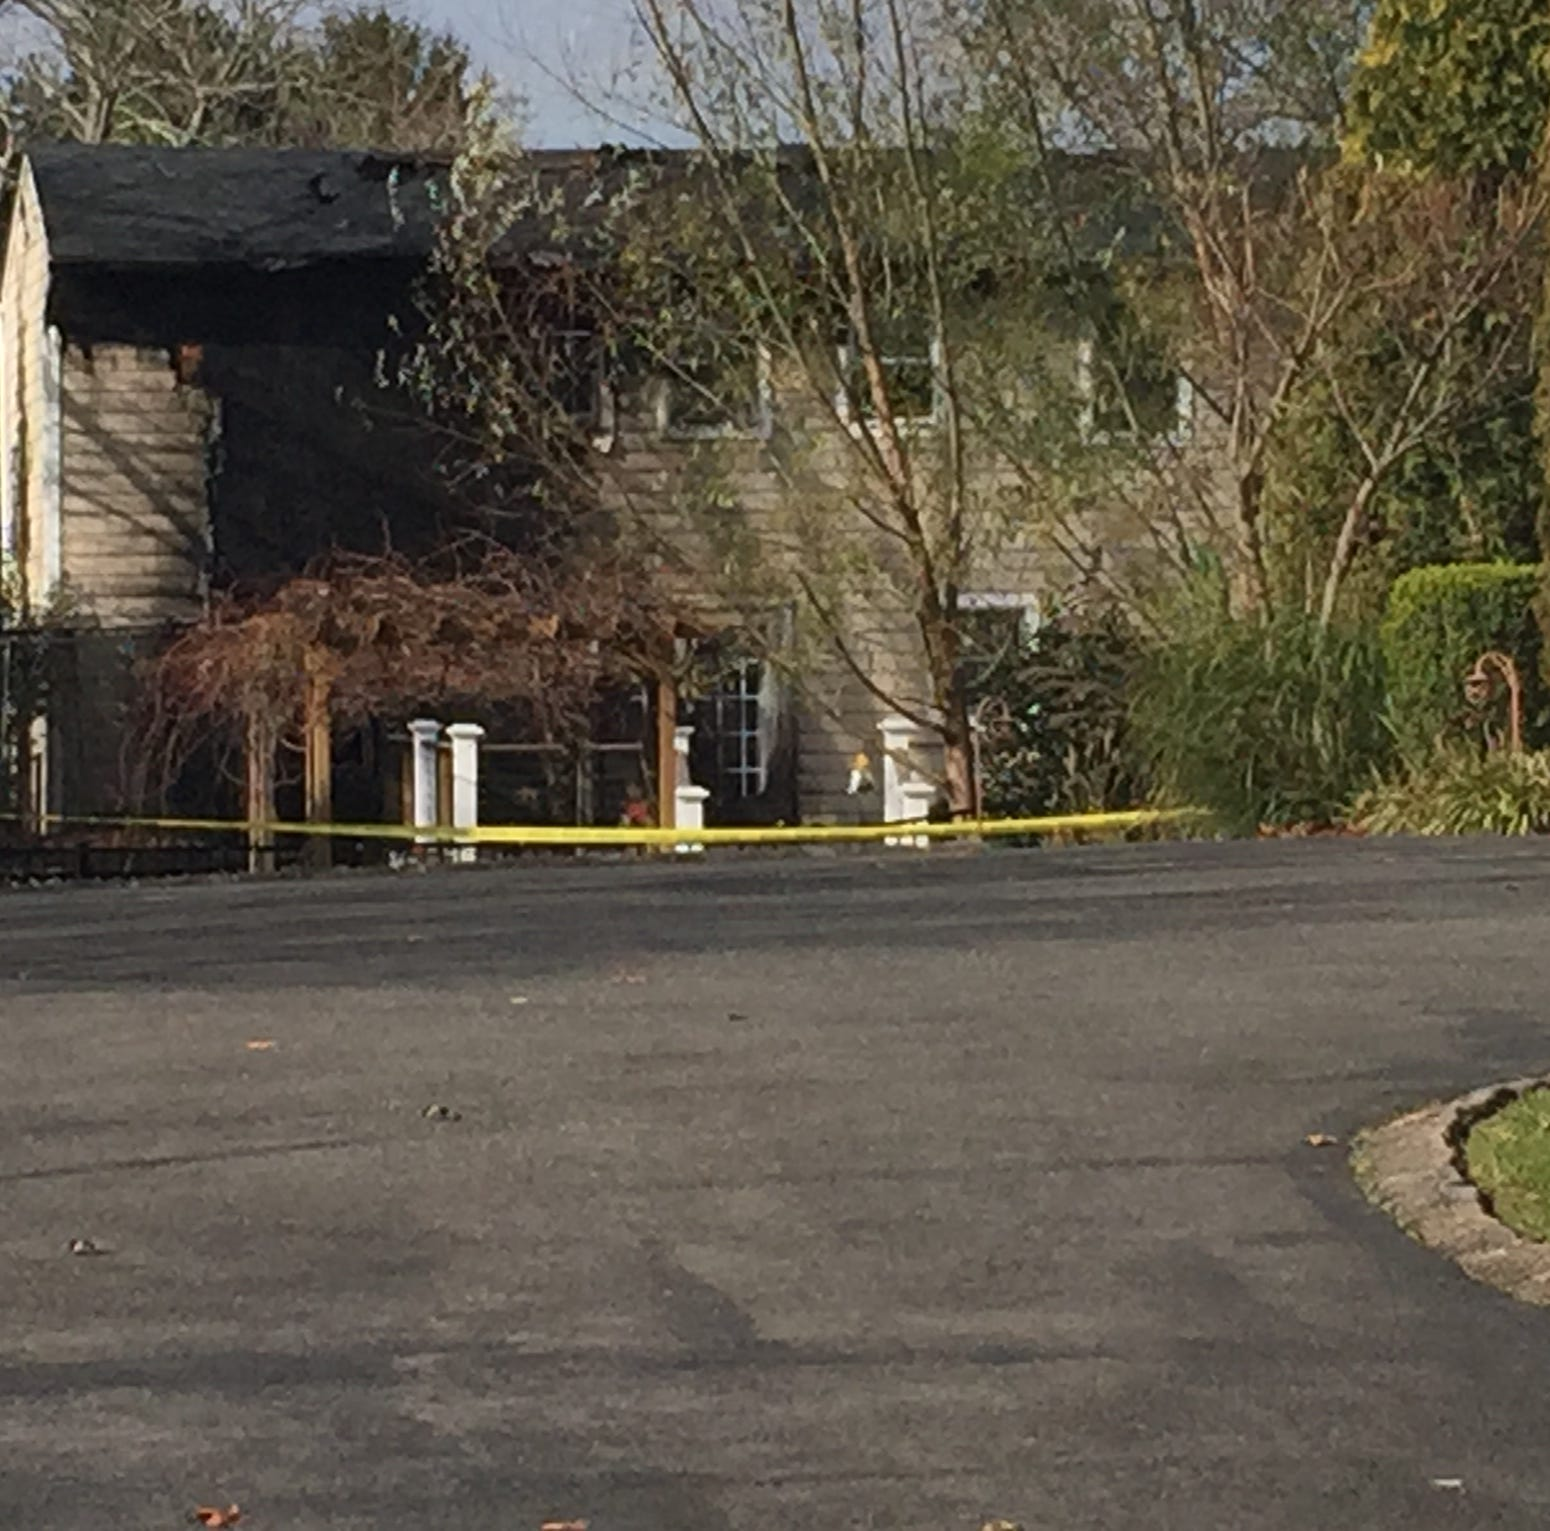 Colts Neck fire: Neighbor saw brother about half hour before fire